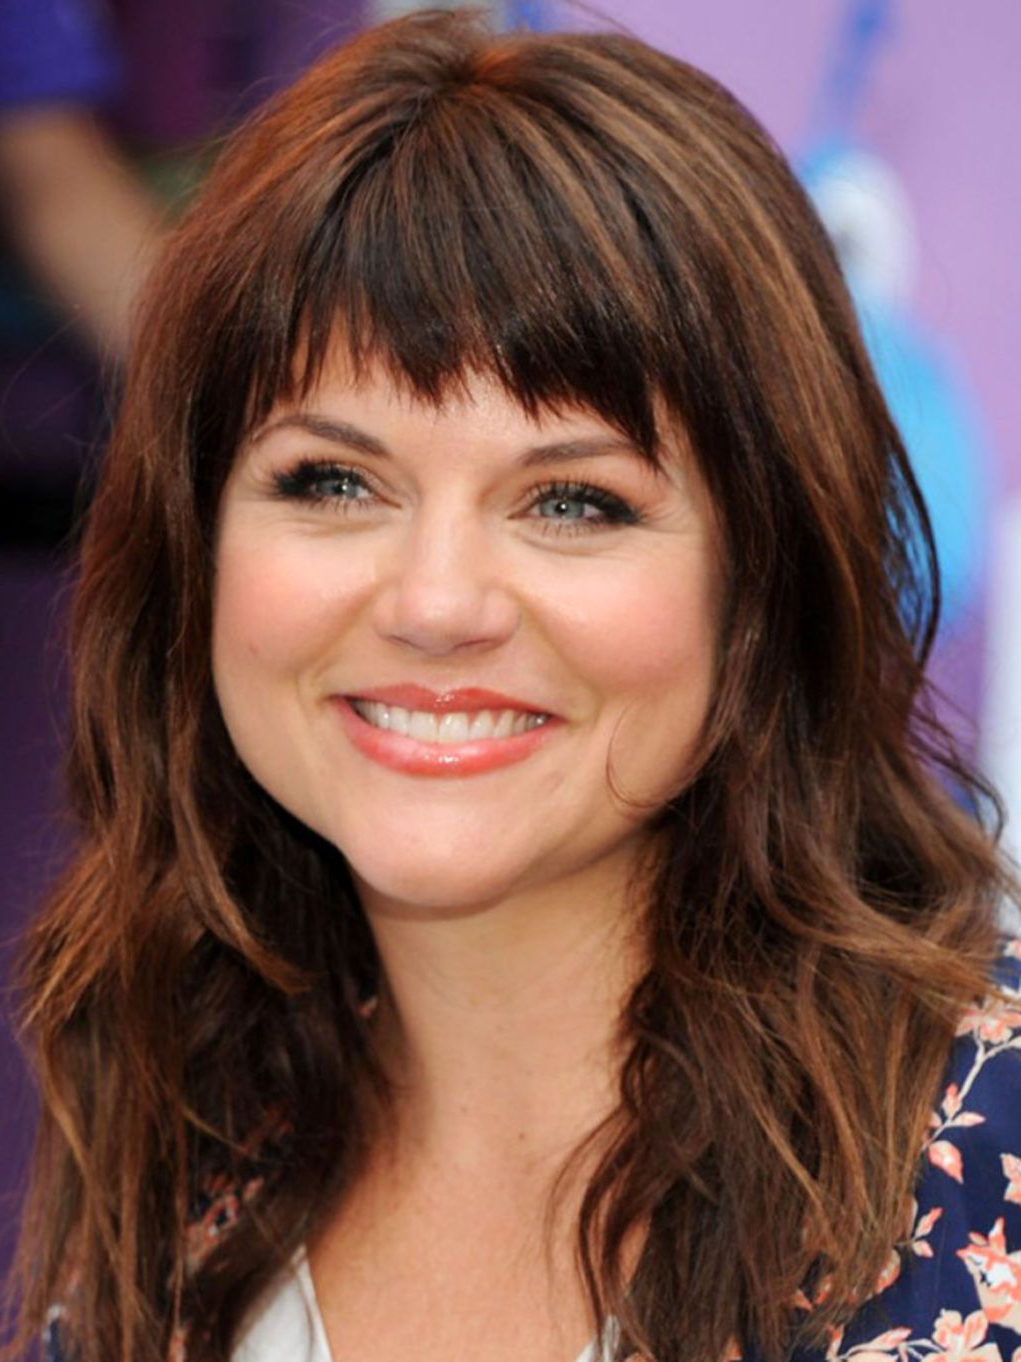 The Best (And Worst) Bangs For Pear Shaped Faces   Bangs   Pinterest In Short Hairstyles For Pear Shaped Faces (View 22 of 25)